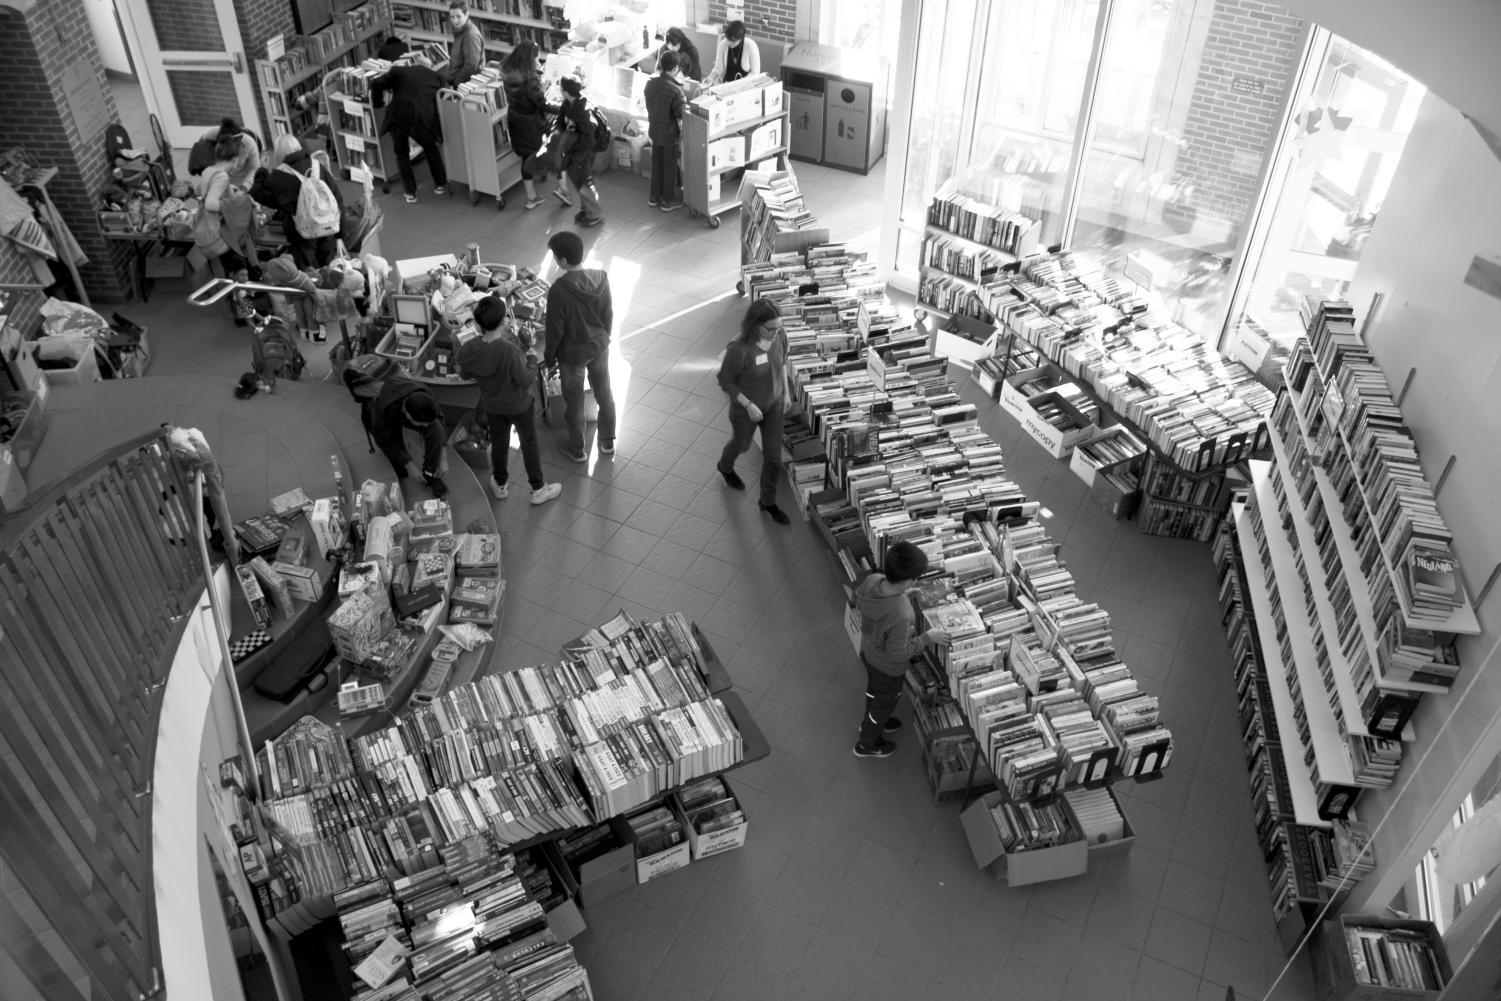 BOOKS WHERE?: Community browses the Book Fair at Fisher Rotunda.